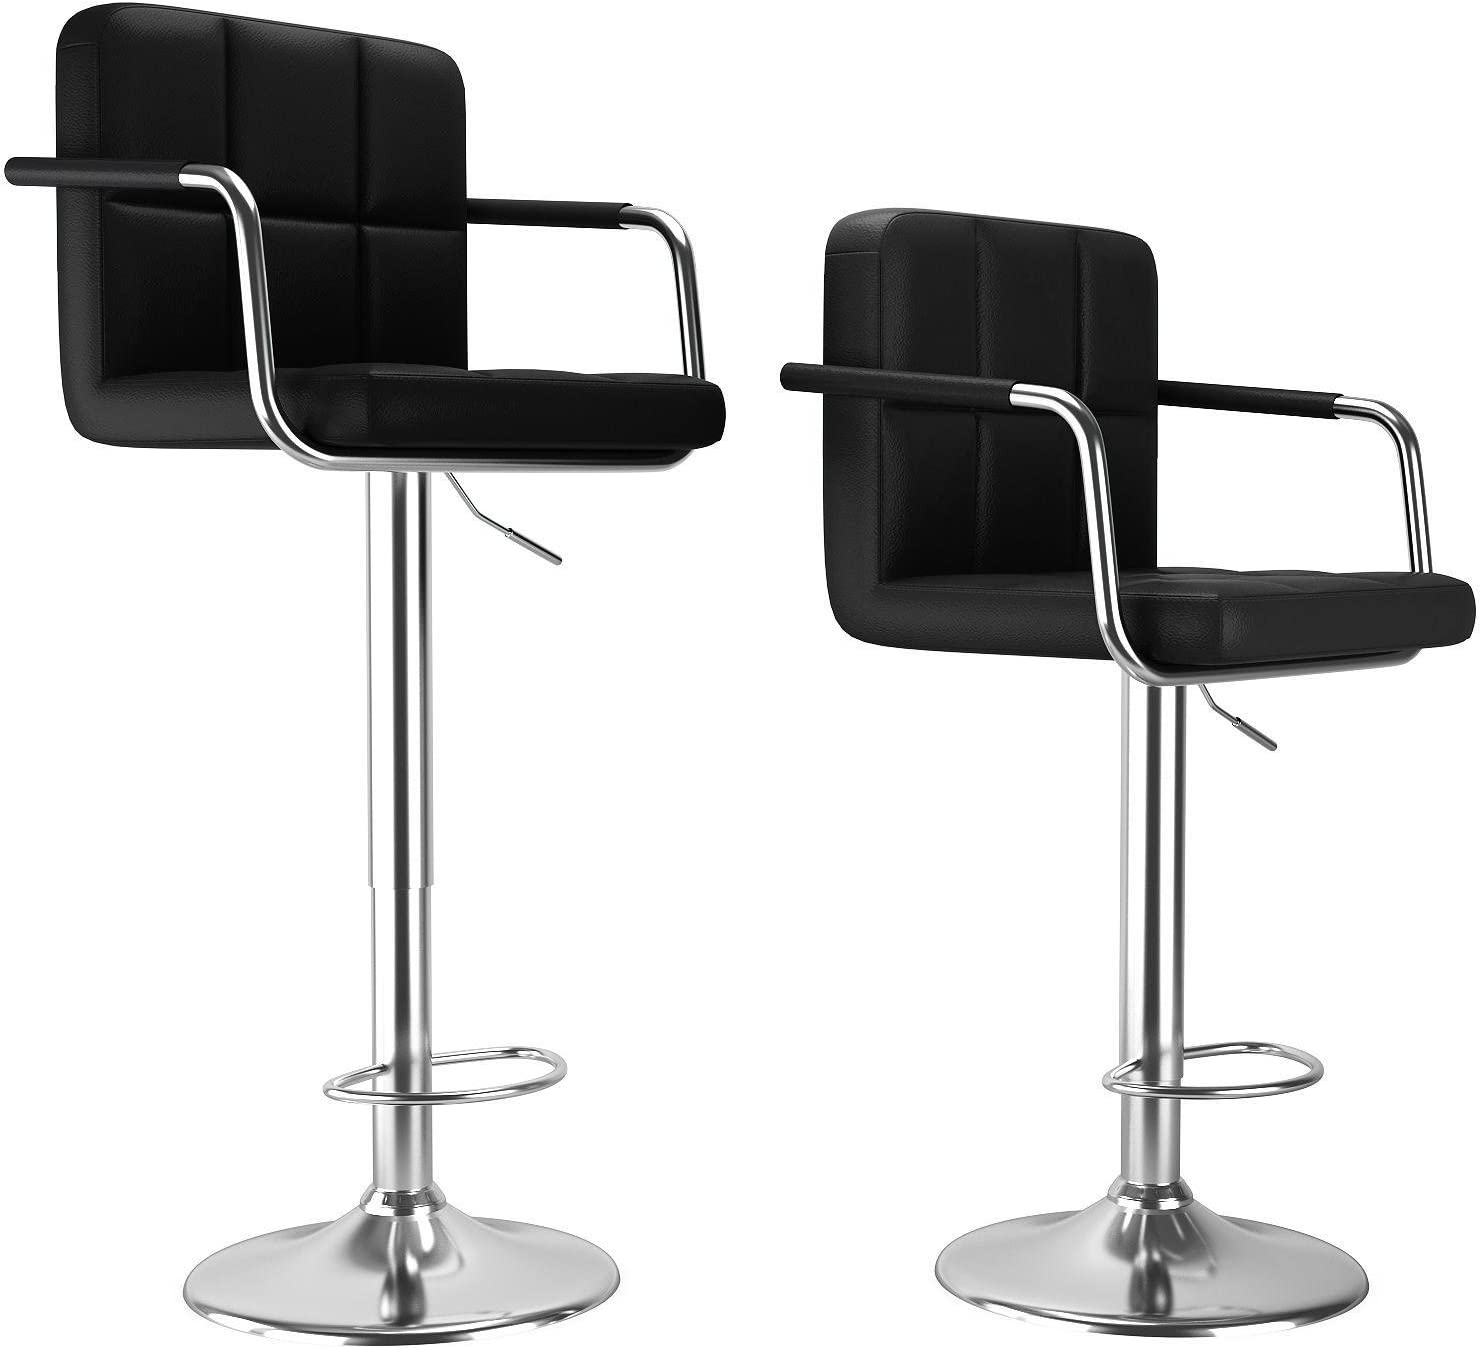 Set of 2,Bar Stool Chair PU Leather Swivel Adjustable Lift Chair with Armrest Black